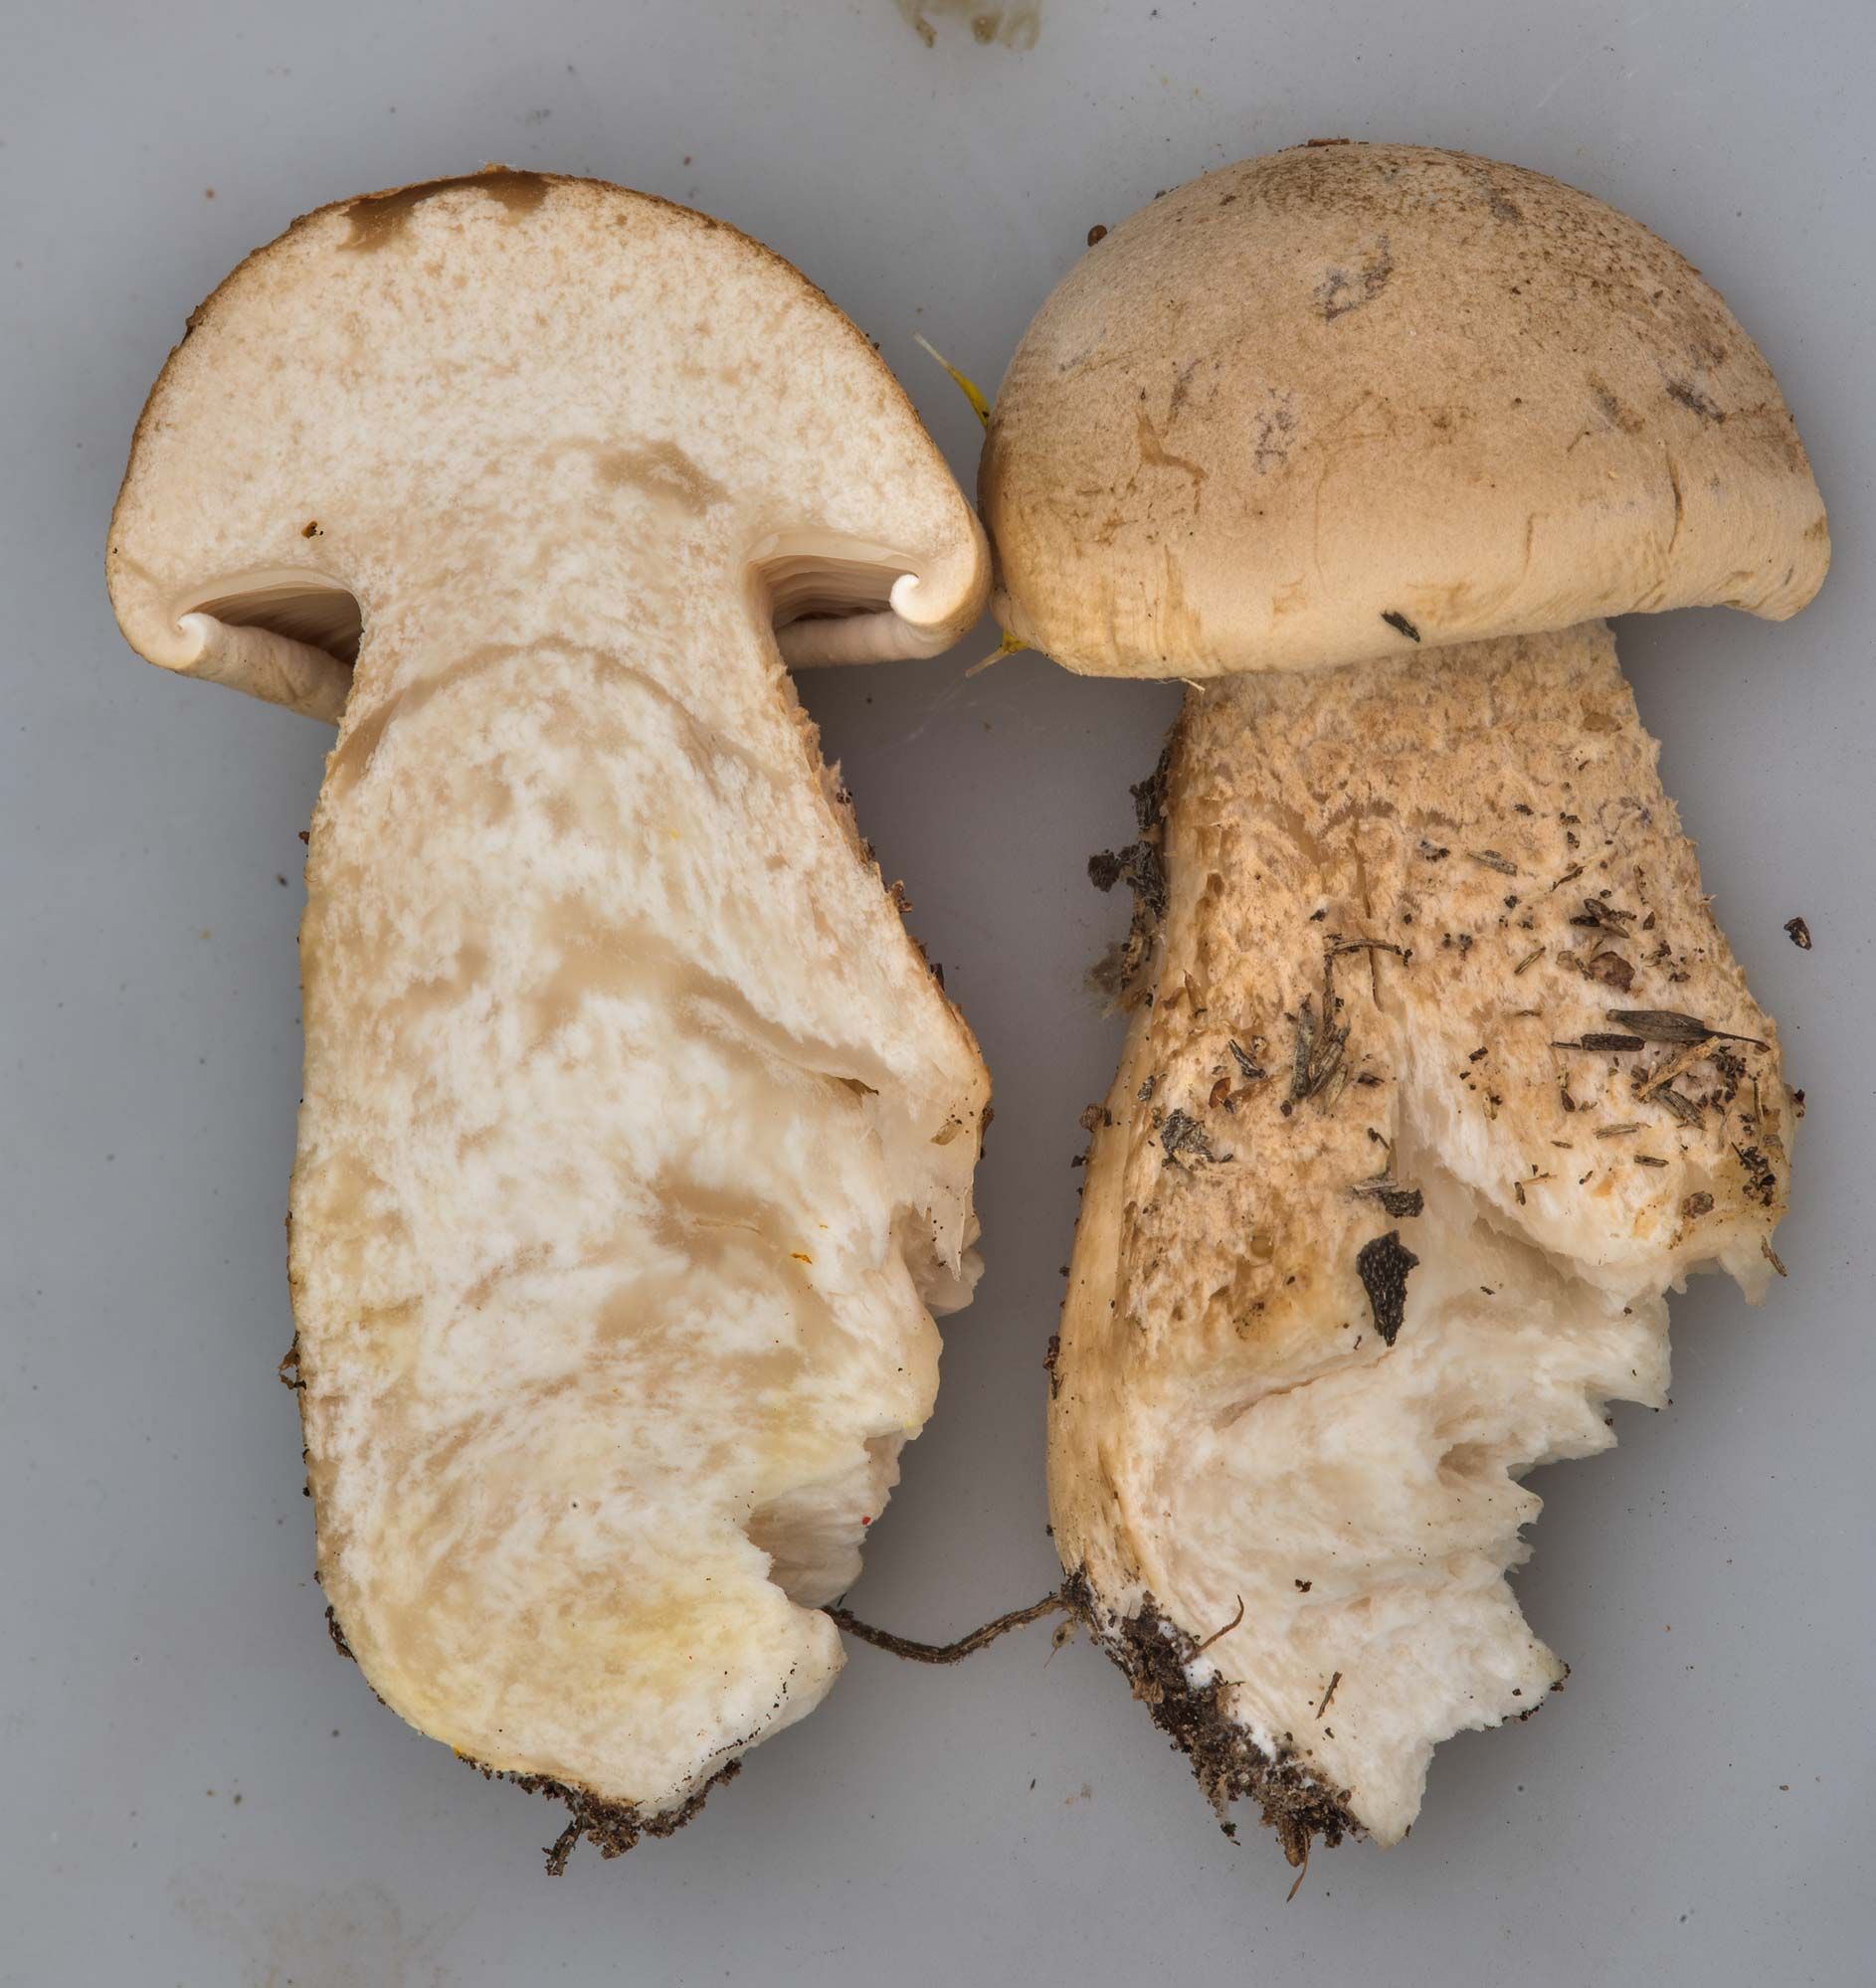 Dissected mushroom Macrocybe titans from a lawn in Lemontree Park. College Station, Texas